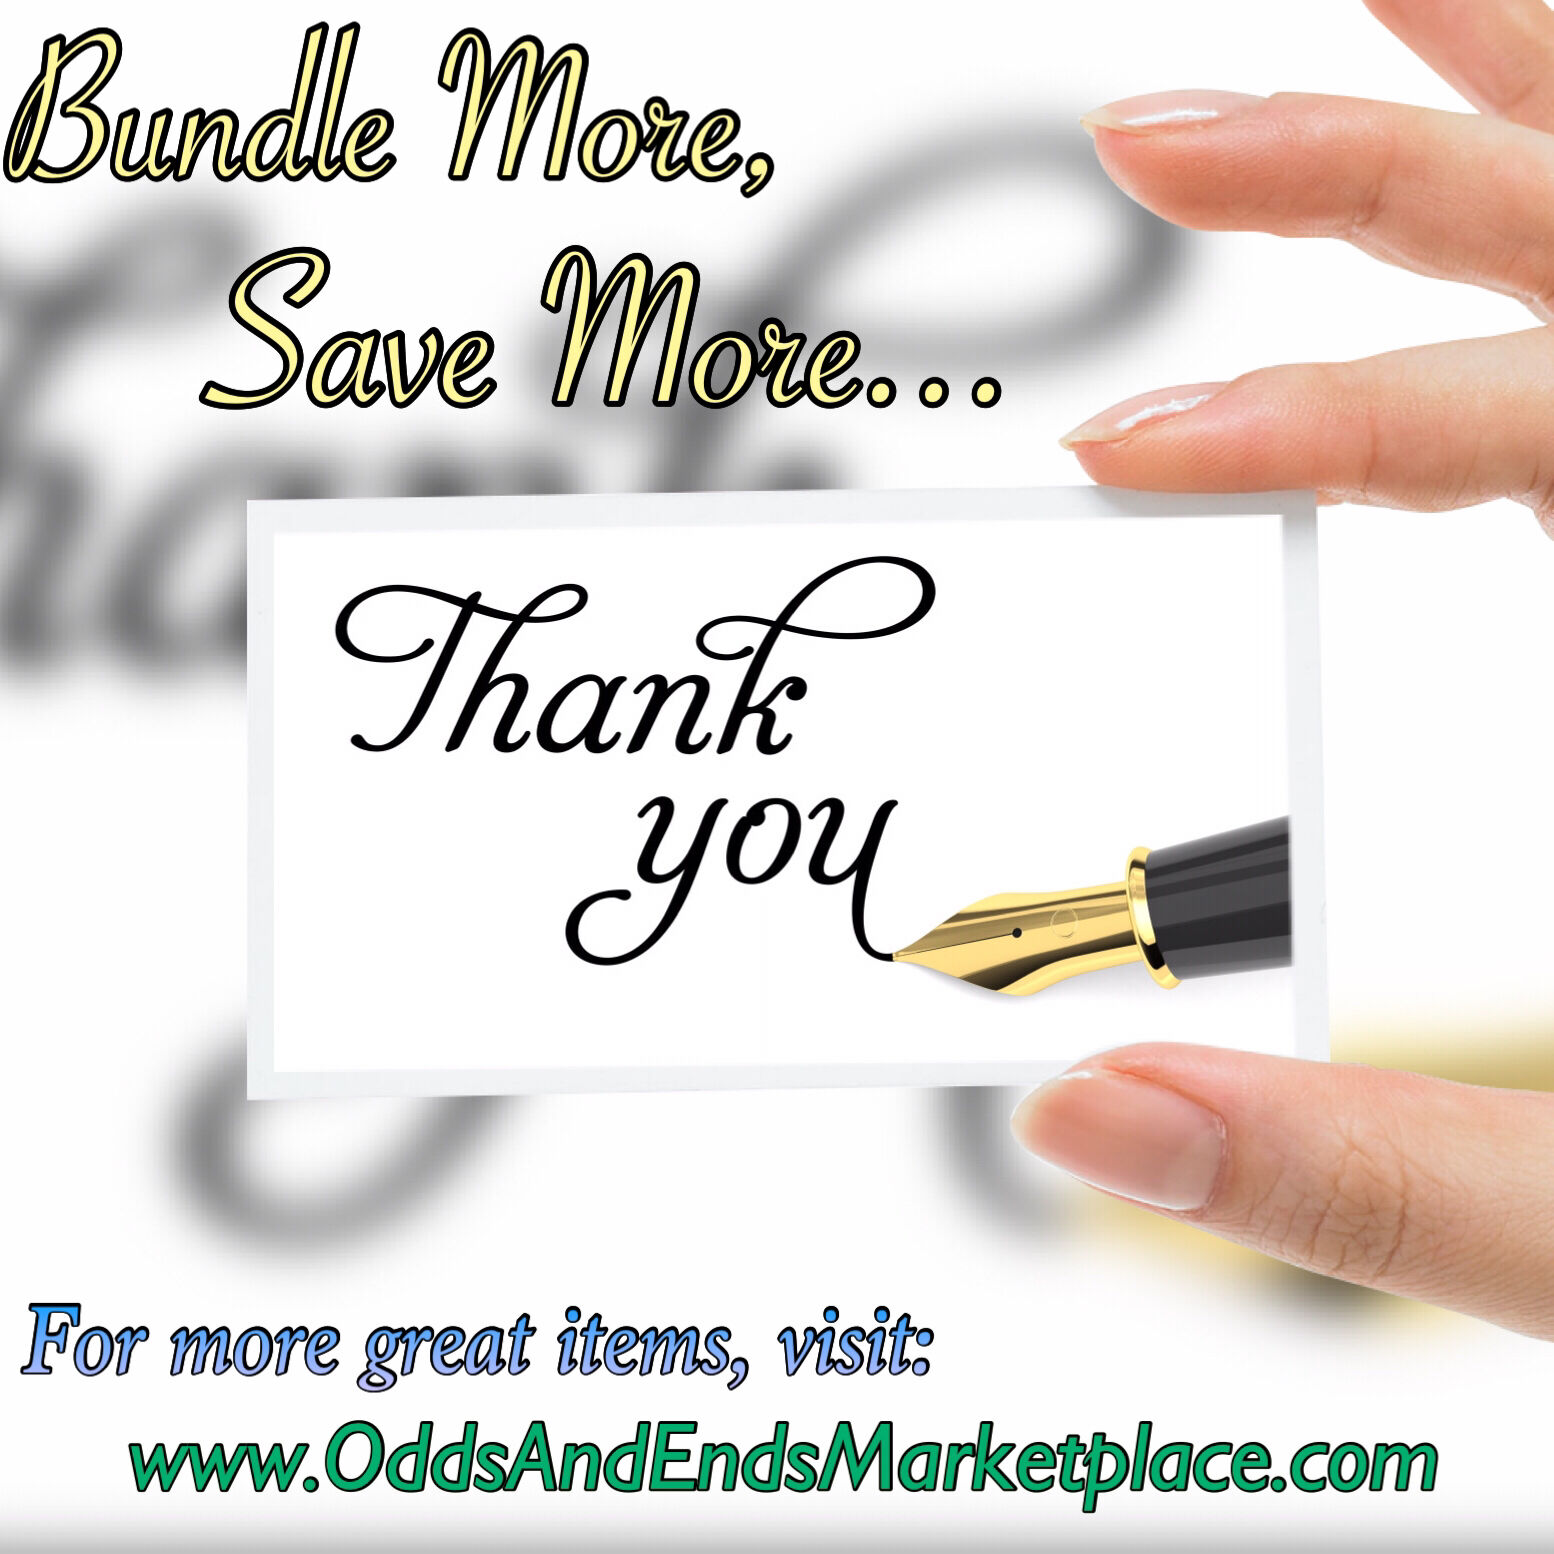 Odds And Ends Marketplace